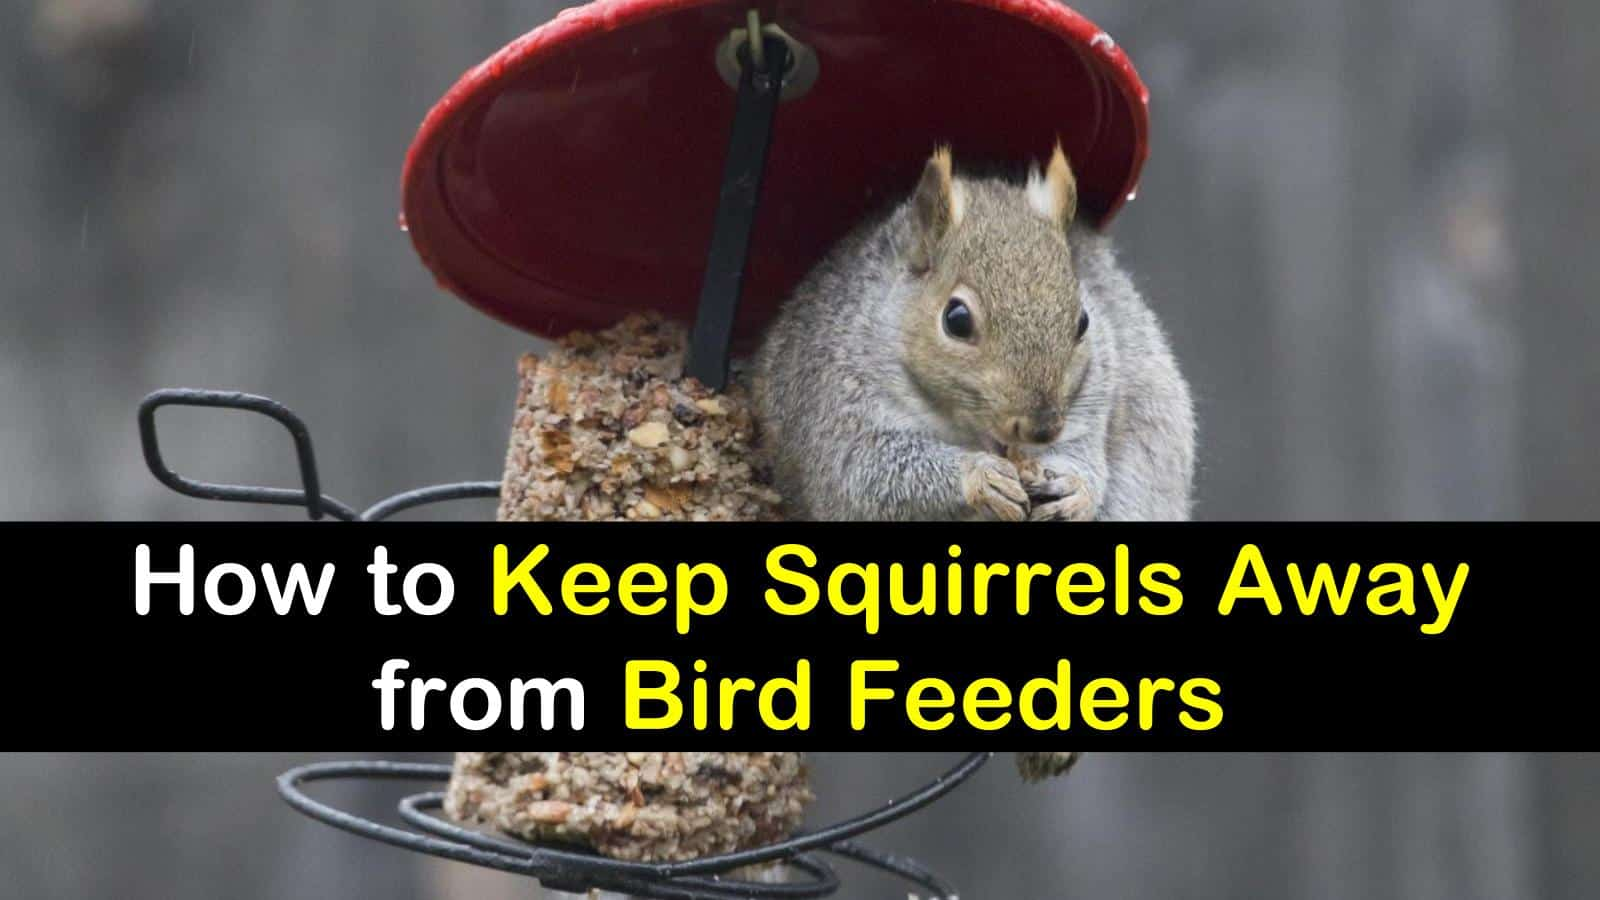 squirrels ado how keep off your feeders much to feeder bird about dsc somethin friday april